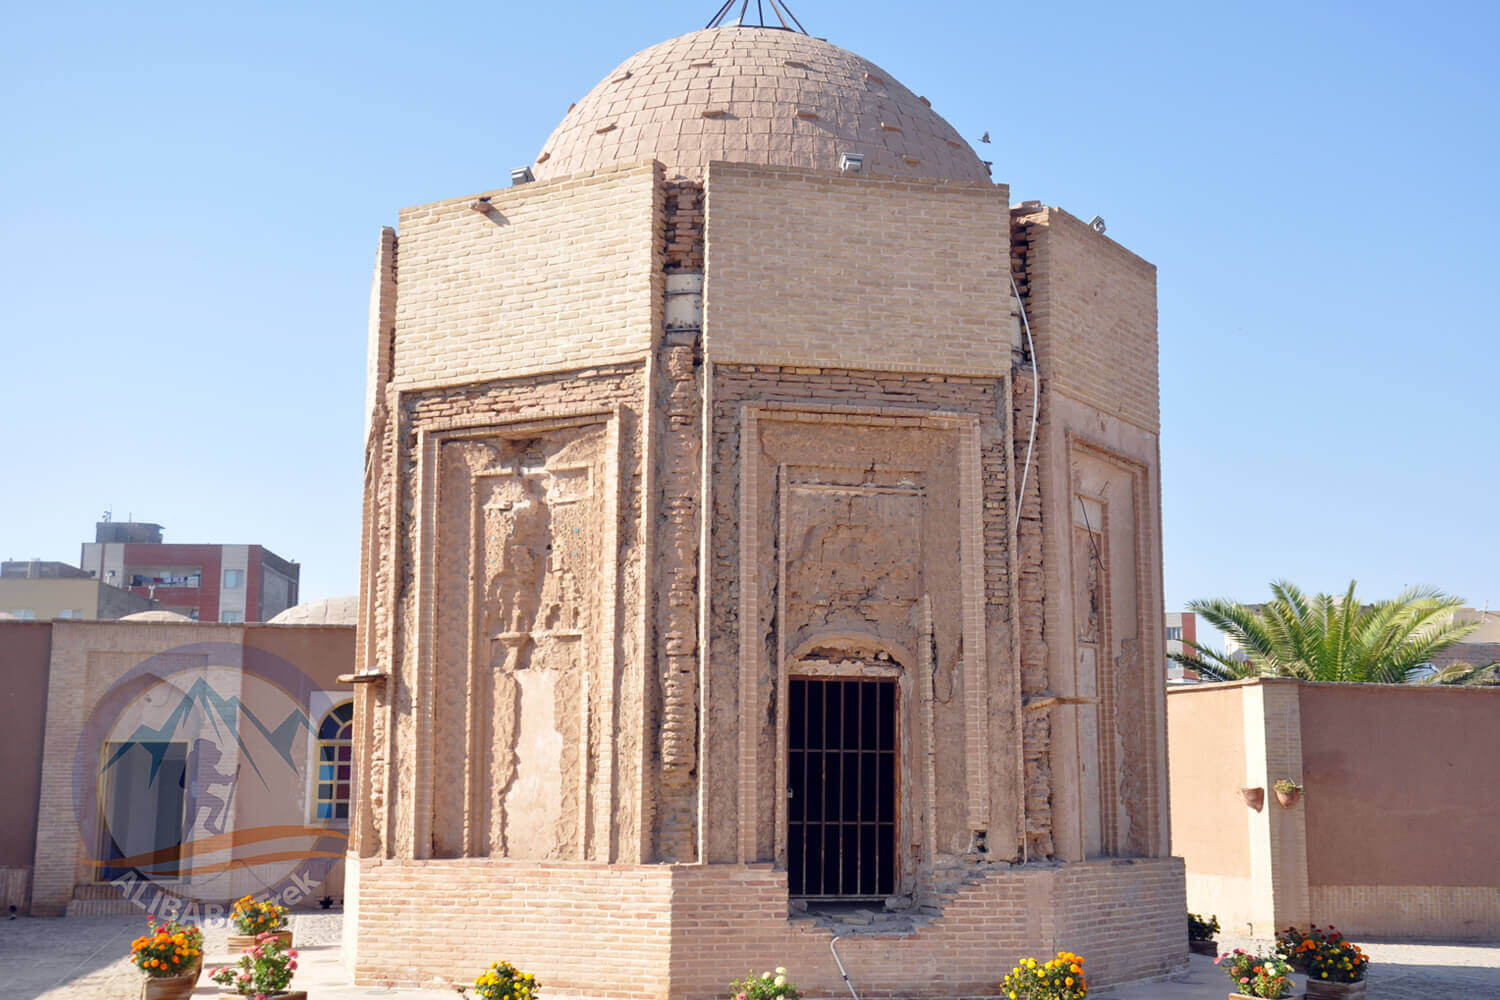 Alibabatrek iran tour kerman travel guide tours in kerman Khajeh Atabak Tomb